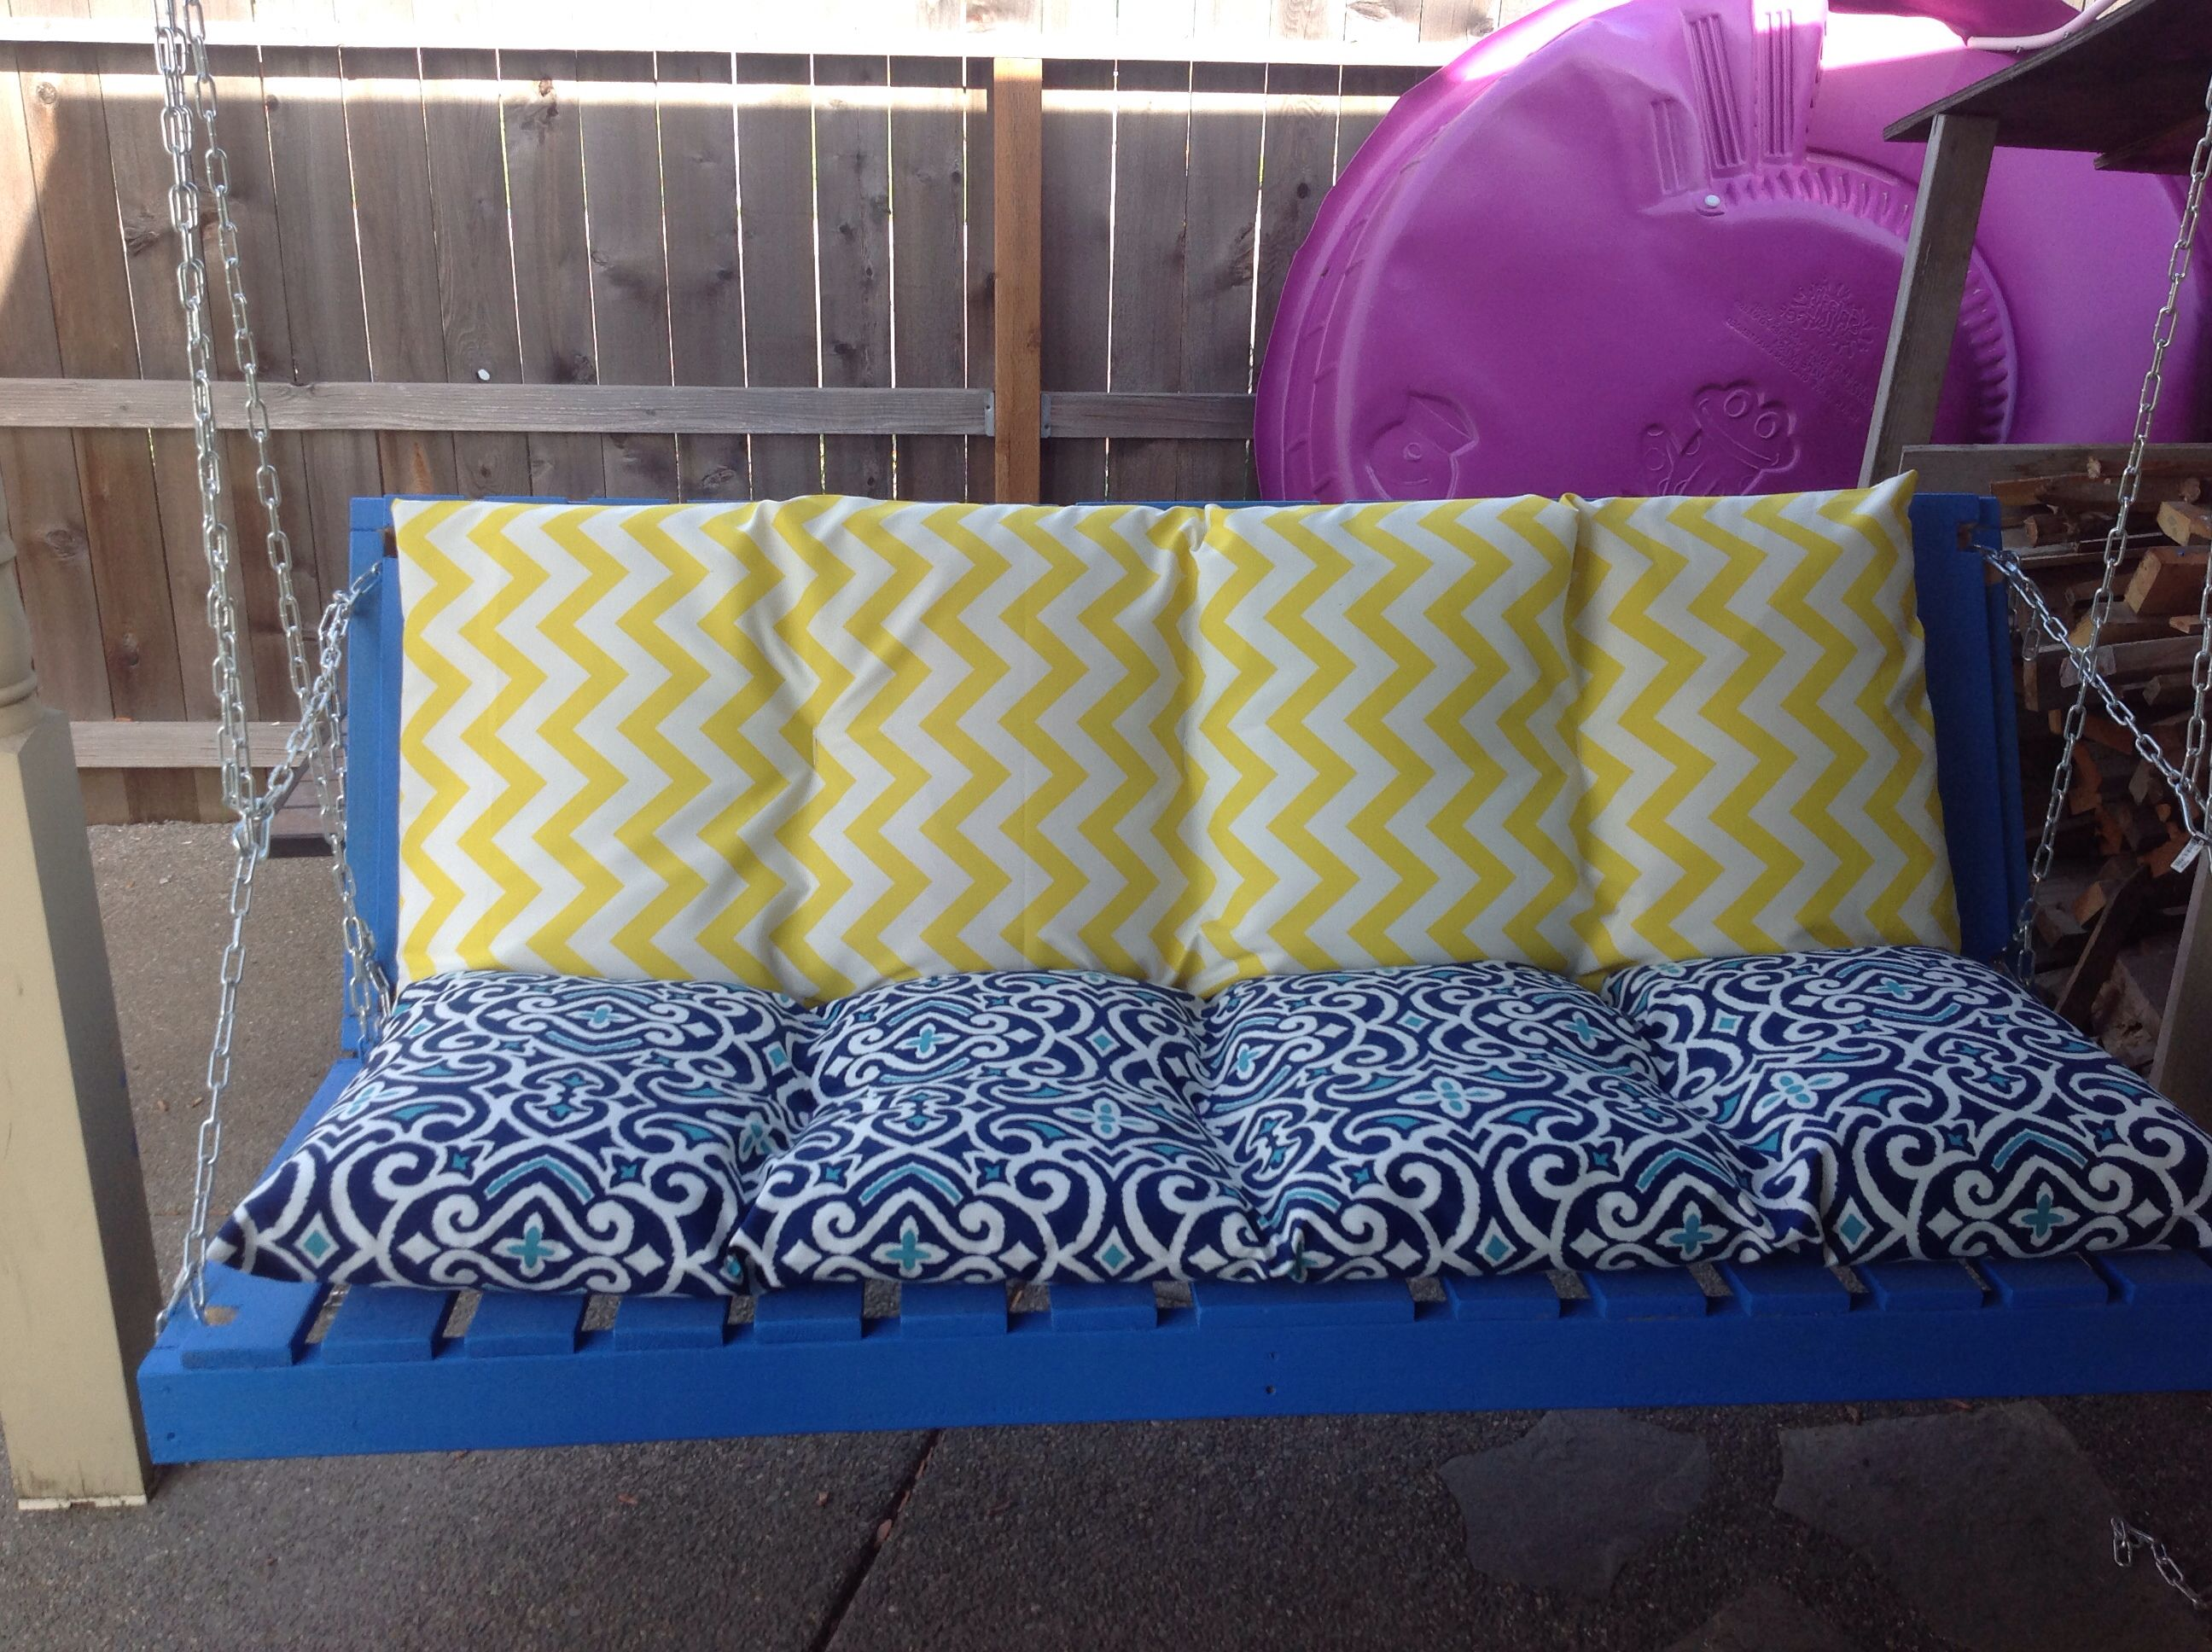 Porch swing futon DIY made with 2x4 s wood slats and chain Then